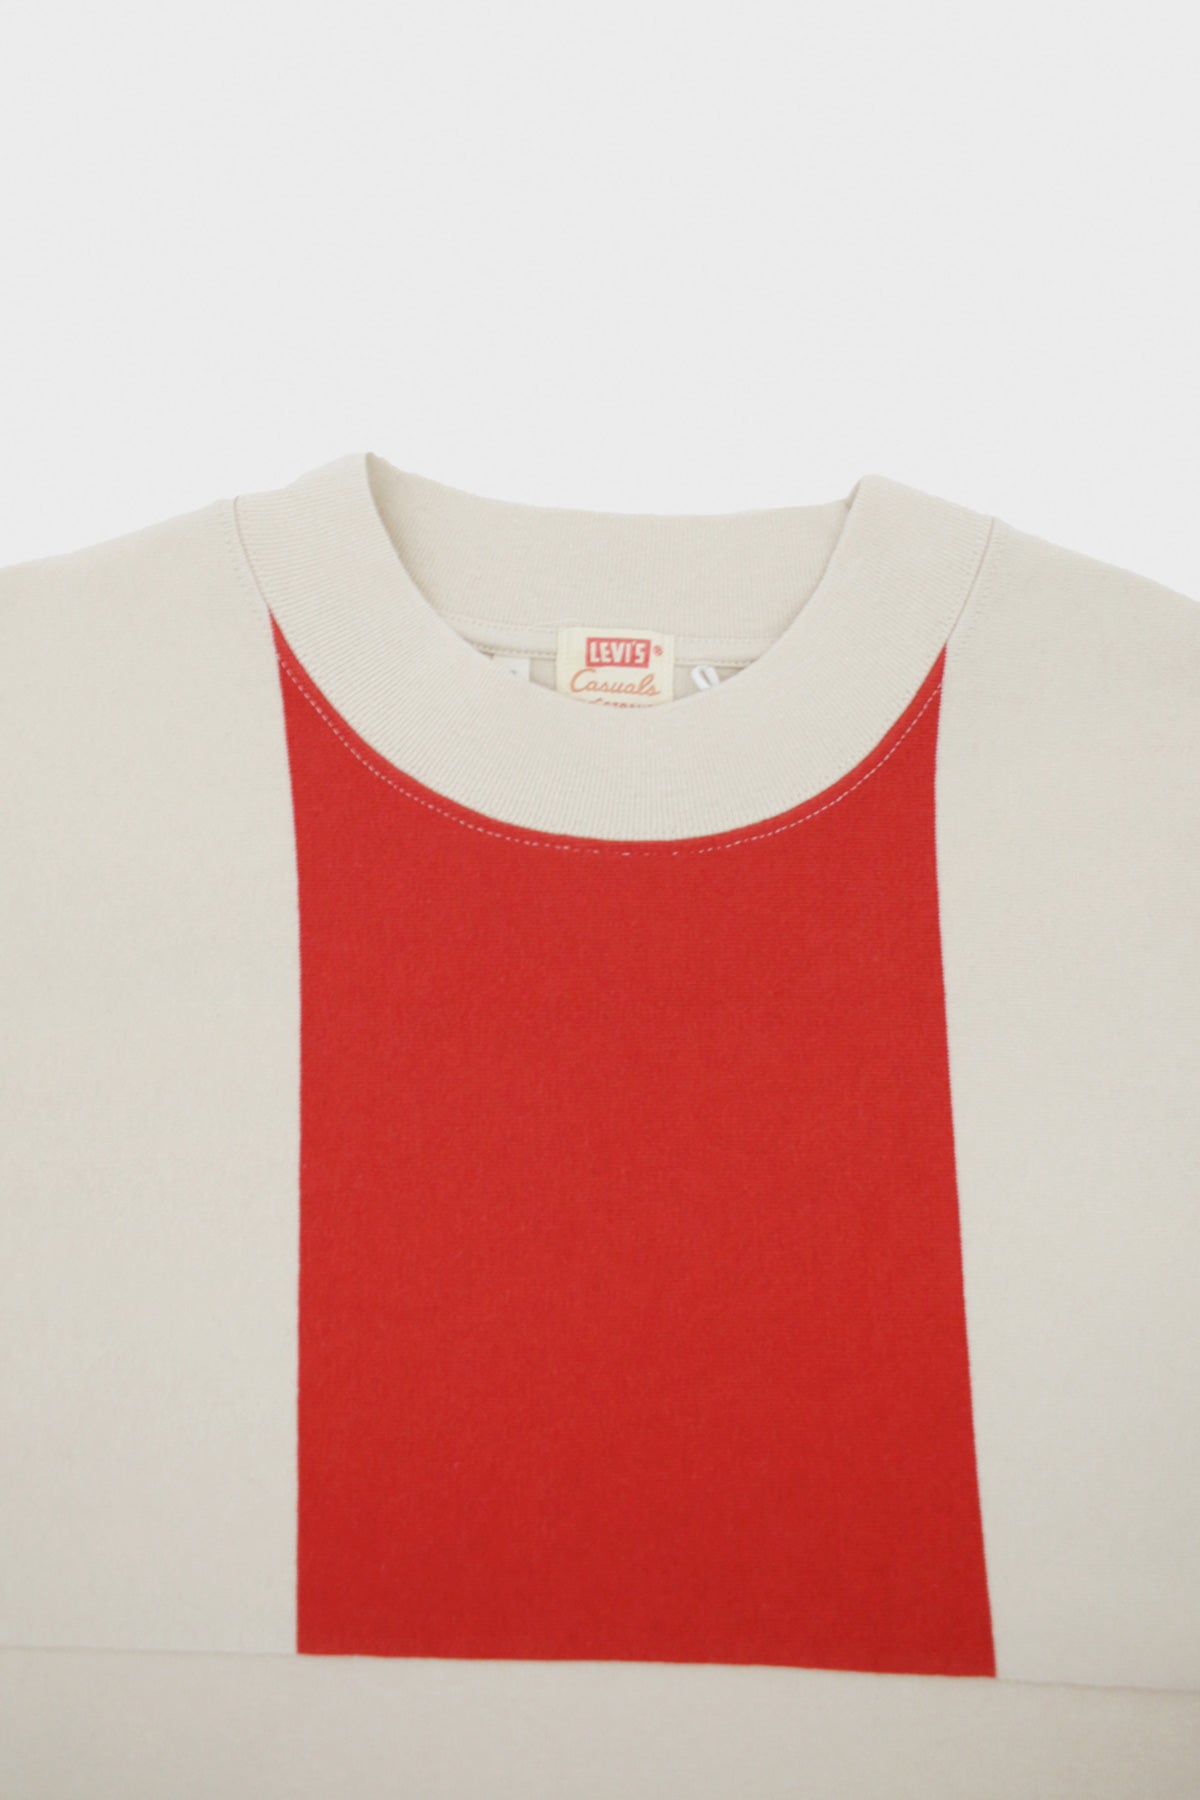 Levi's Vintage Clothing - Split Hem Tee - Red Border White Stripe - Canoe Club